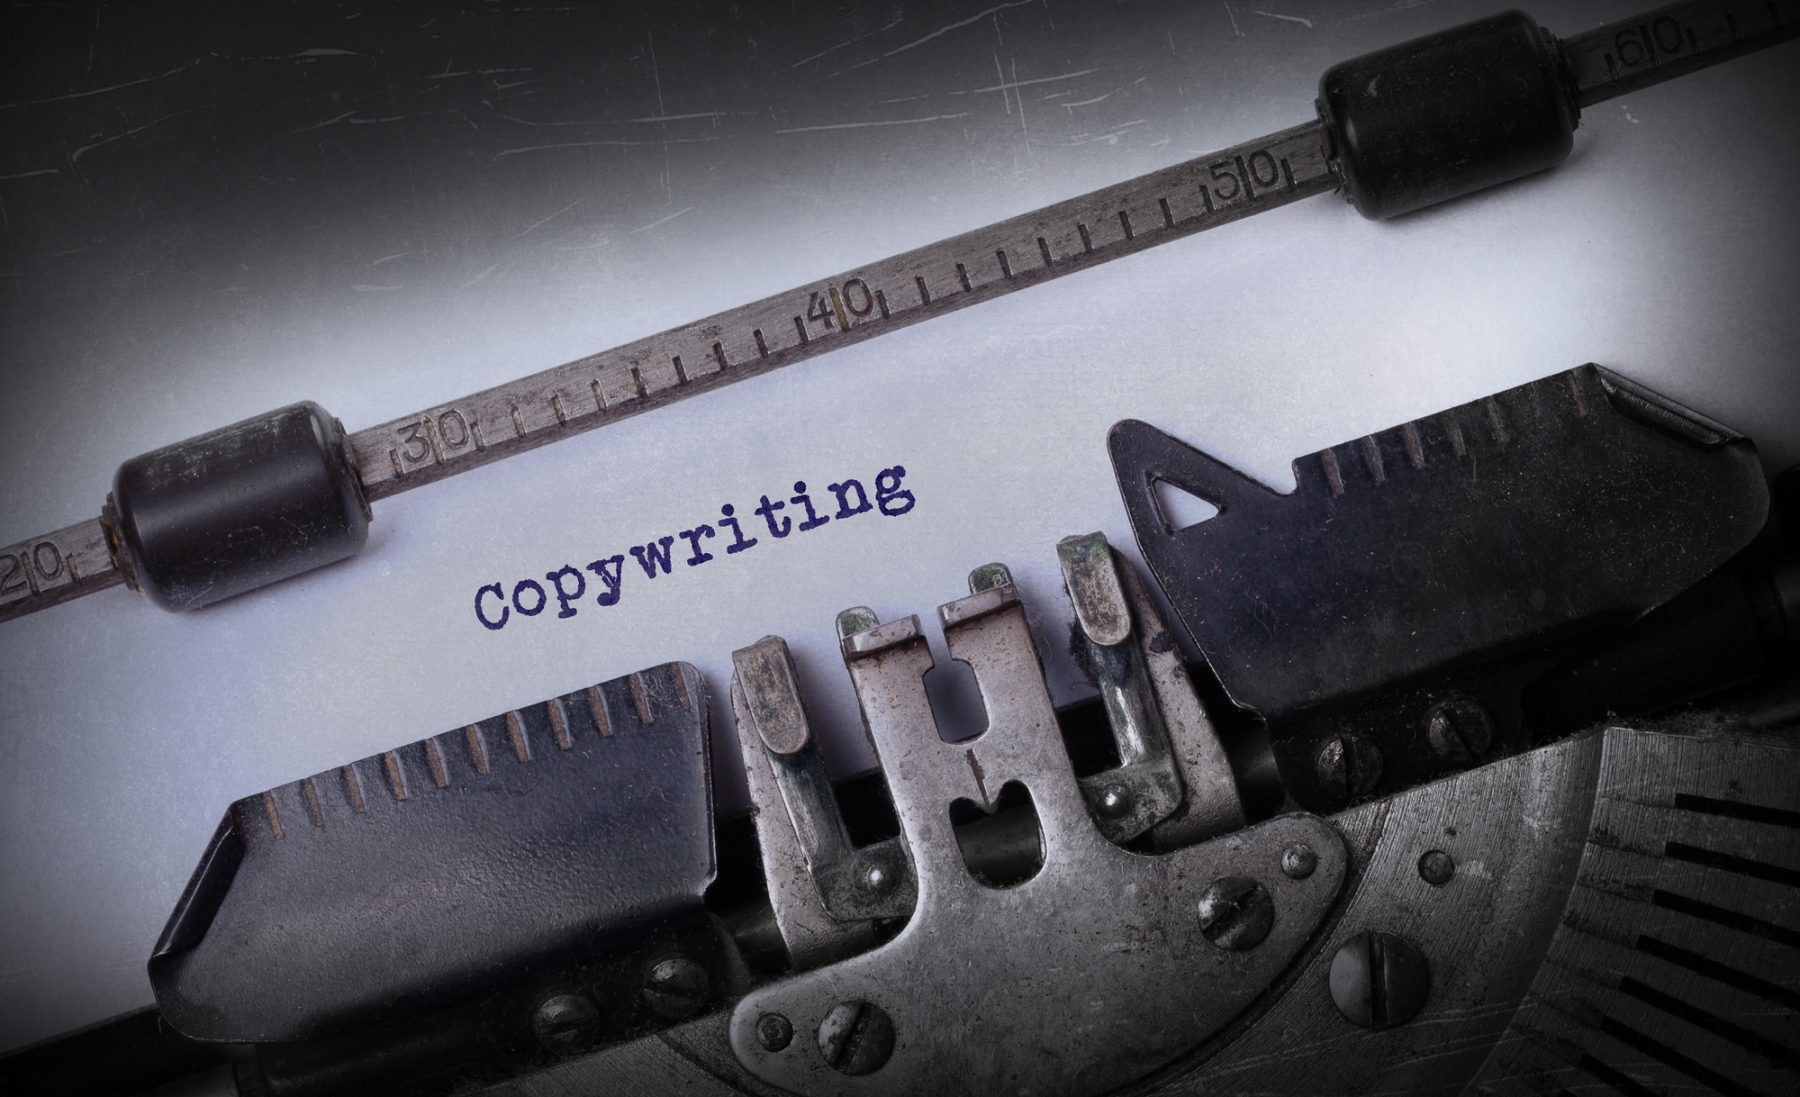 Email Copy writer